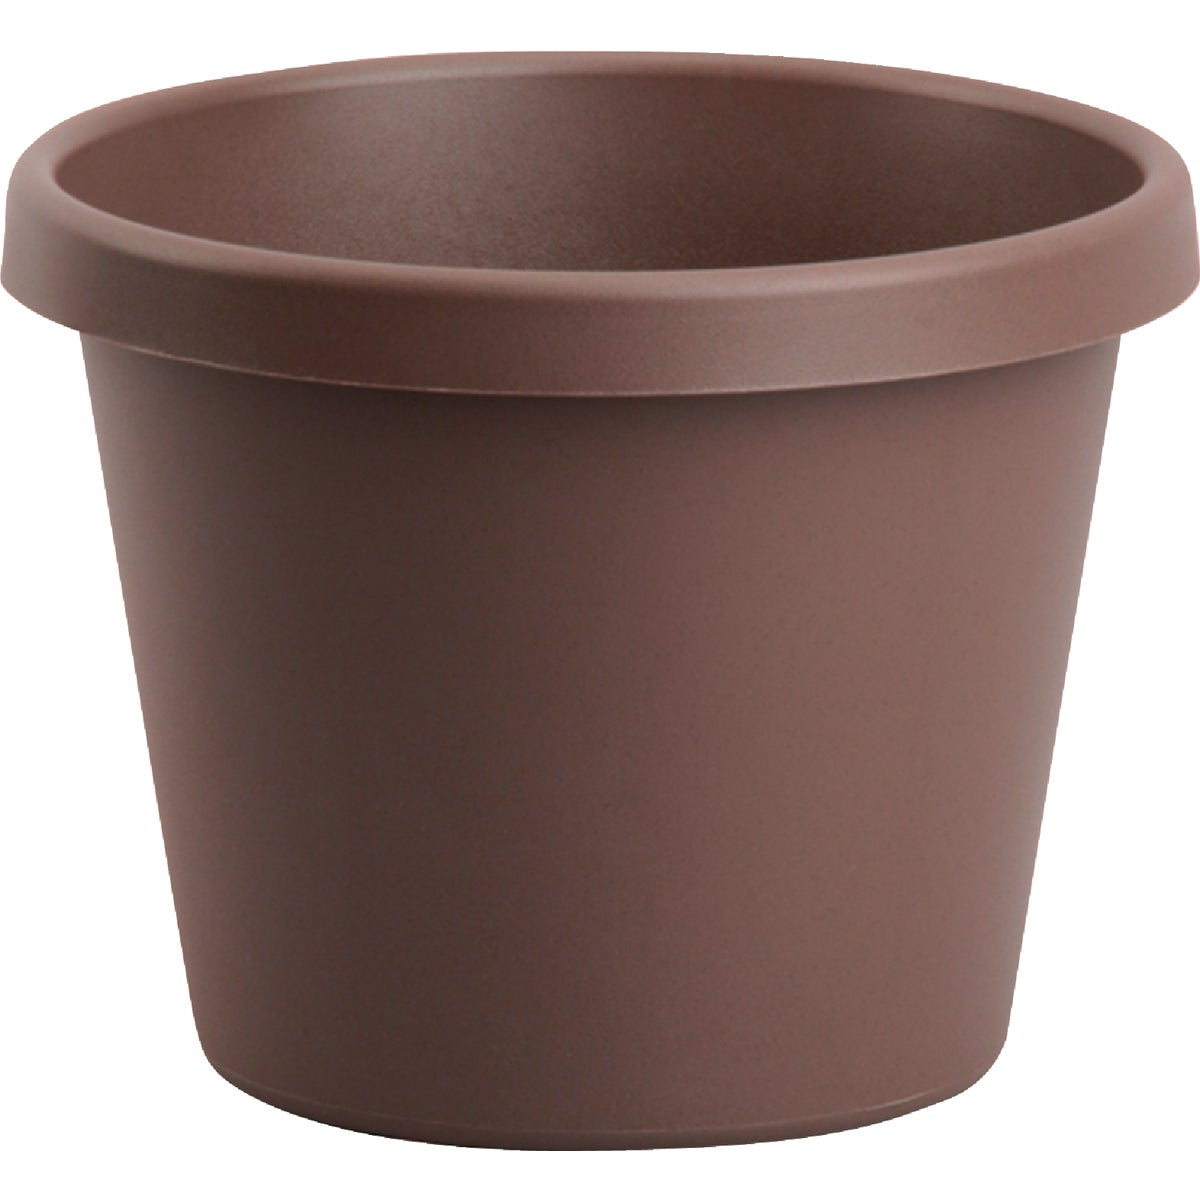 "14"" CHOCOLATE POLY POT - 20-50314 by Fiskars Brands Inc"